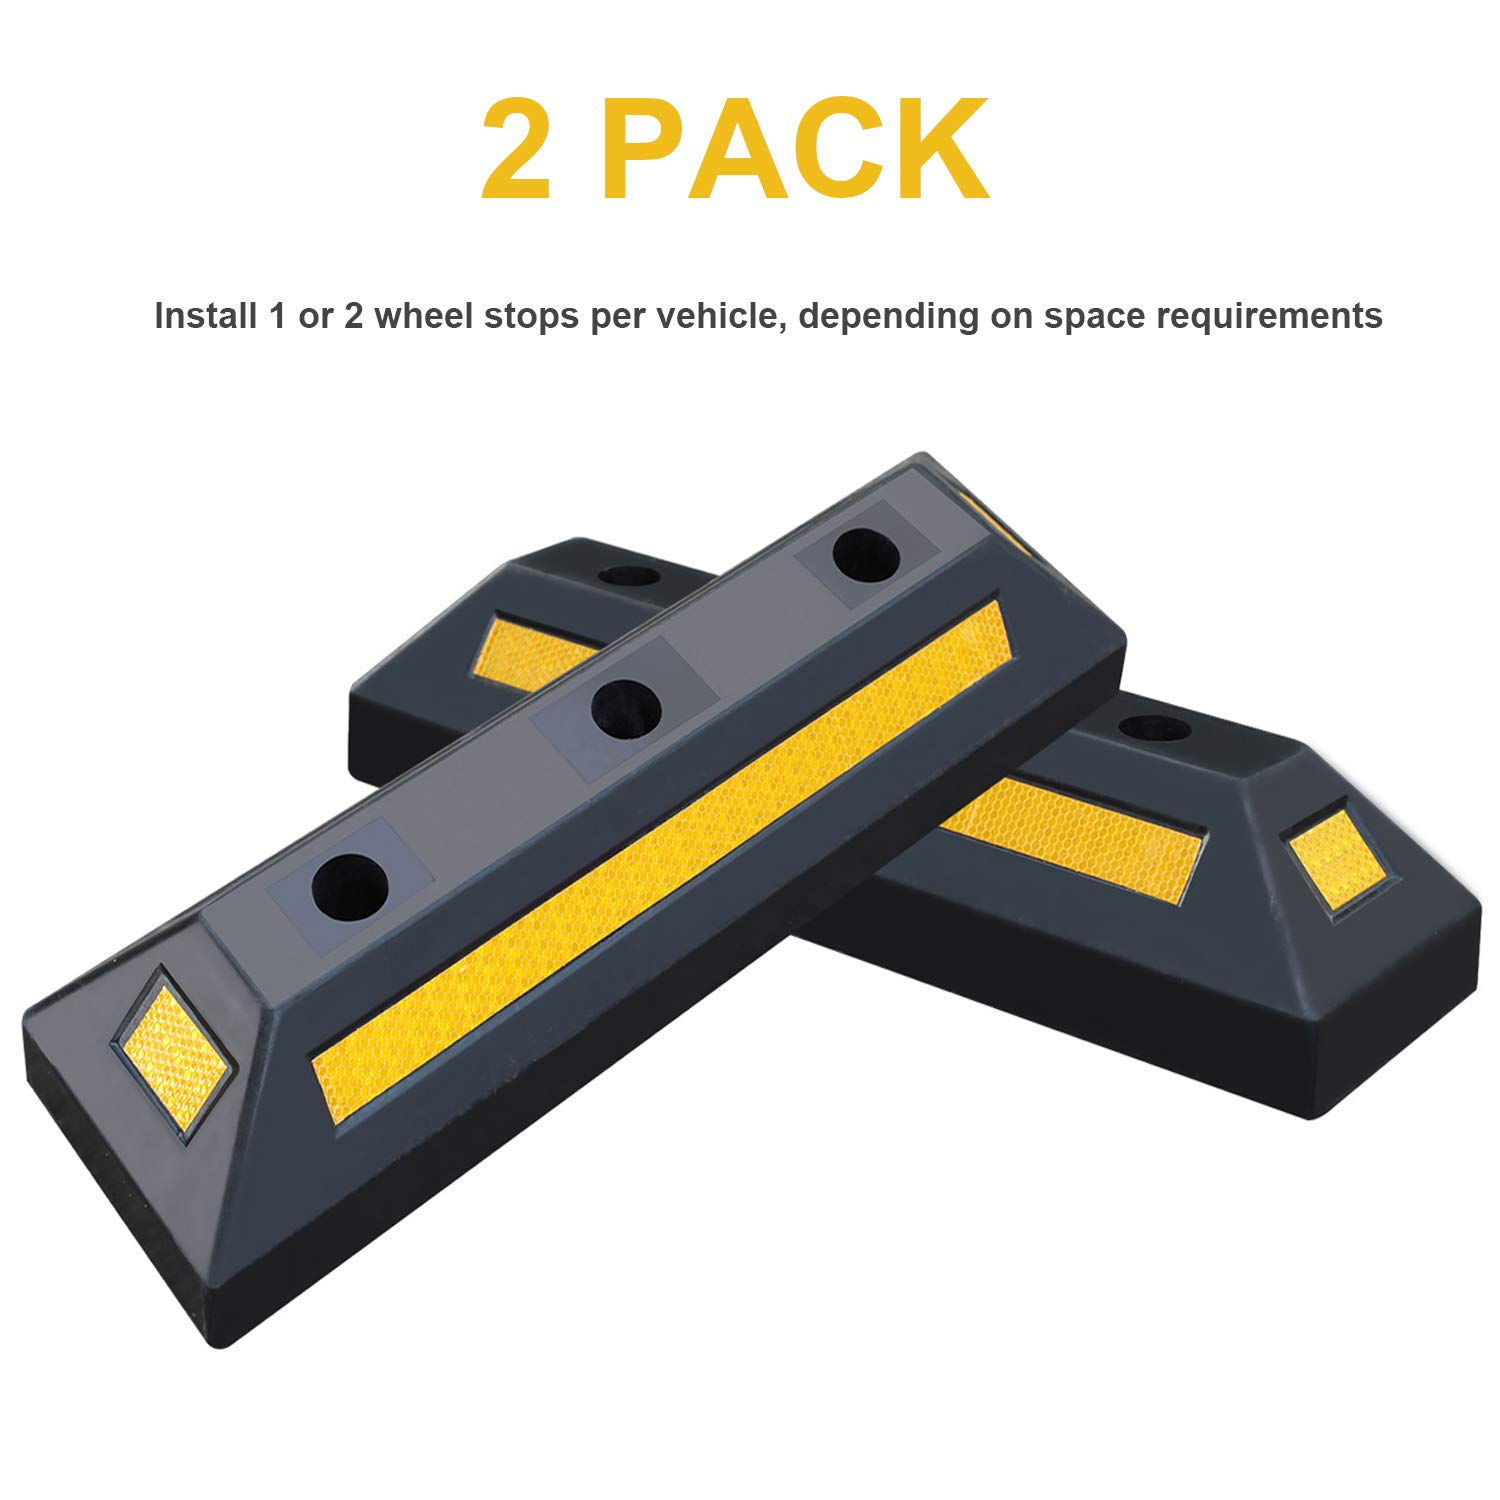 2 Pack Heavy Duty Rubber Parking Blocks Wheel Stop for Car Garage Parks Wheel Stop Stoppers Professional Grade Parking Rubber Block Curb w/Yellow Refective Stripes for Truck RV, Trailer 21.25''(L) by Reliancer (Image #2)